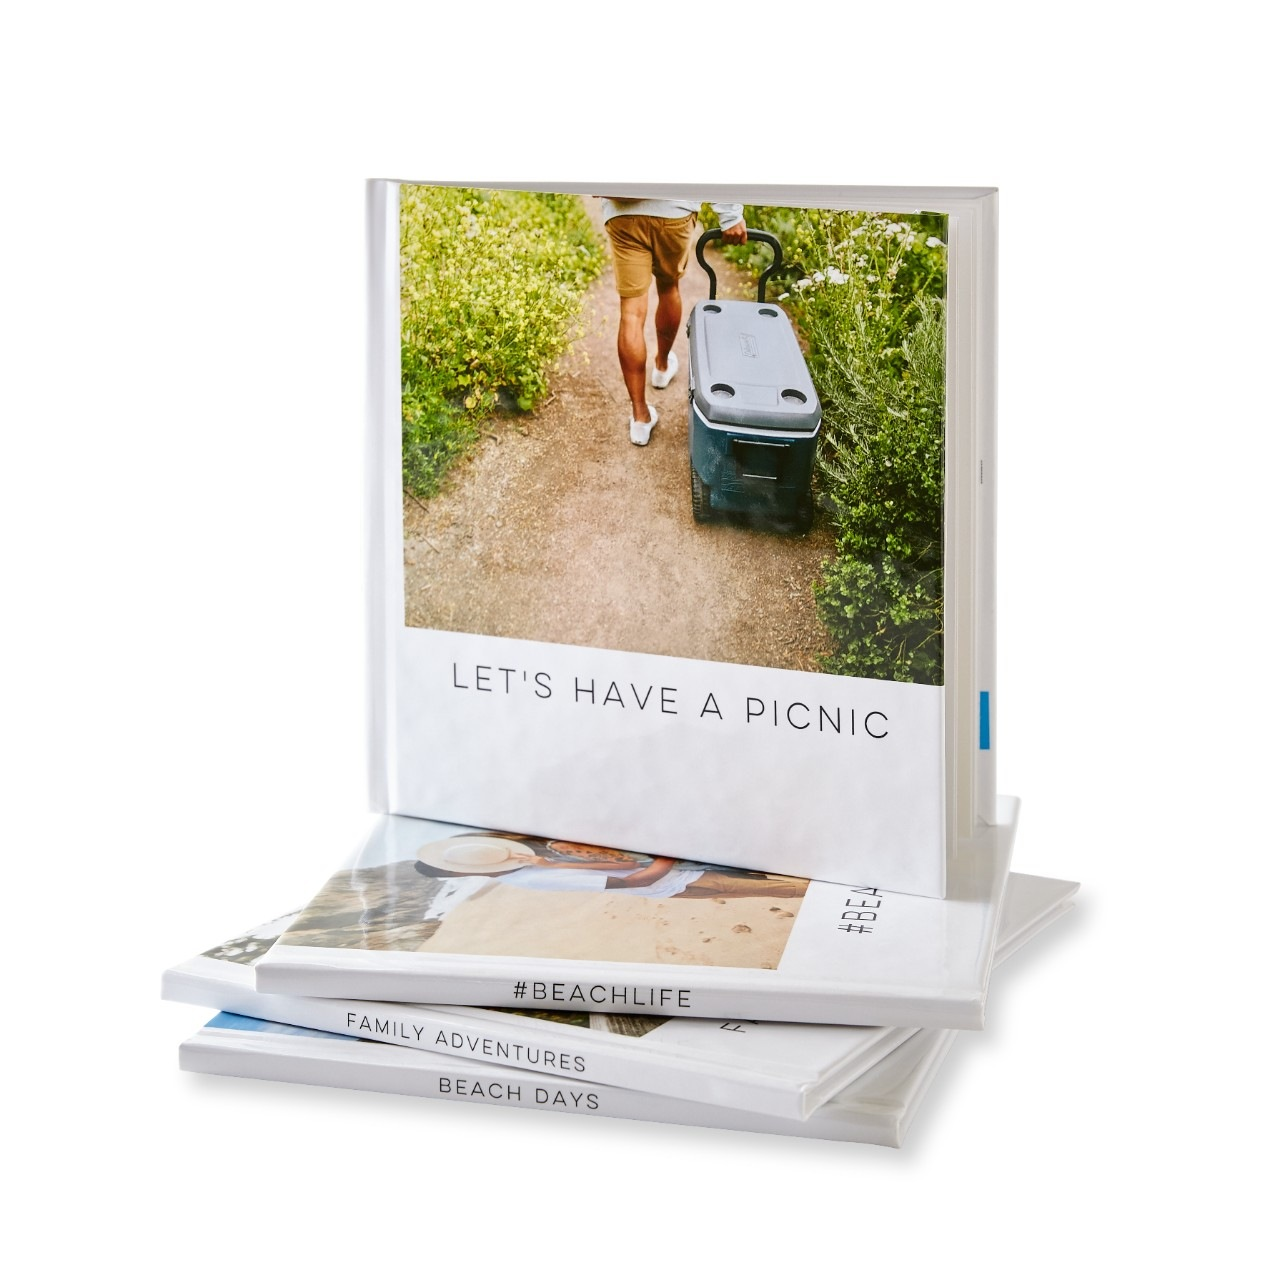 A collection of quick photo books with pictures of weekend adventures